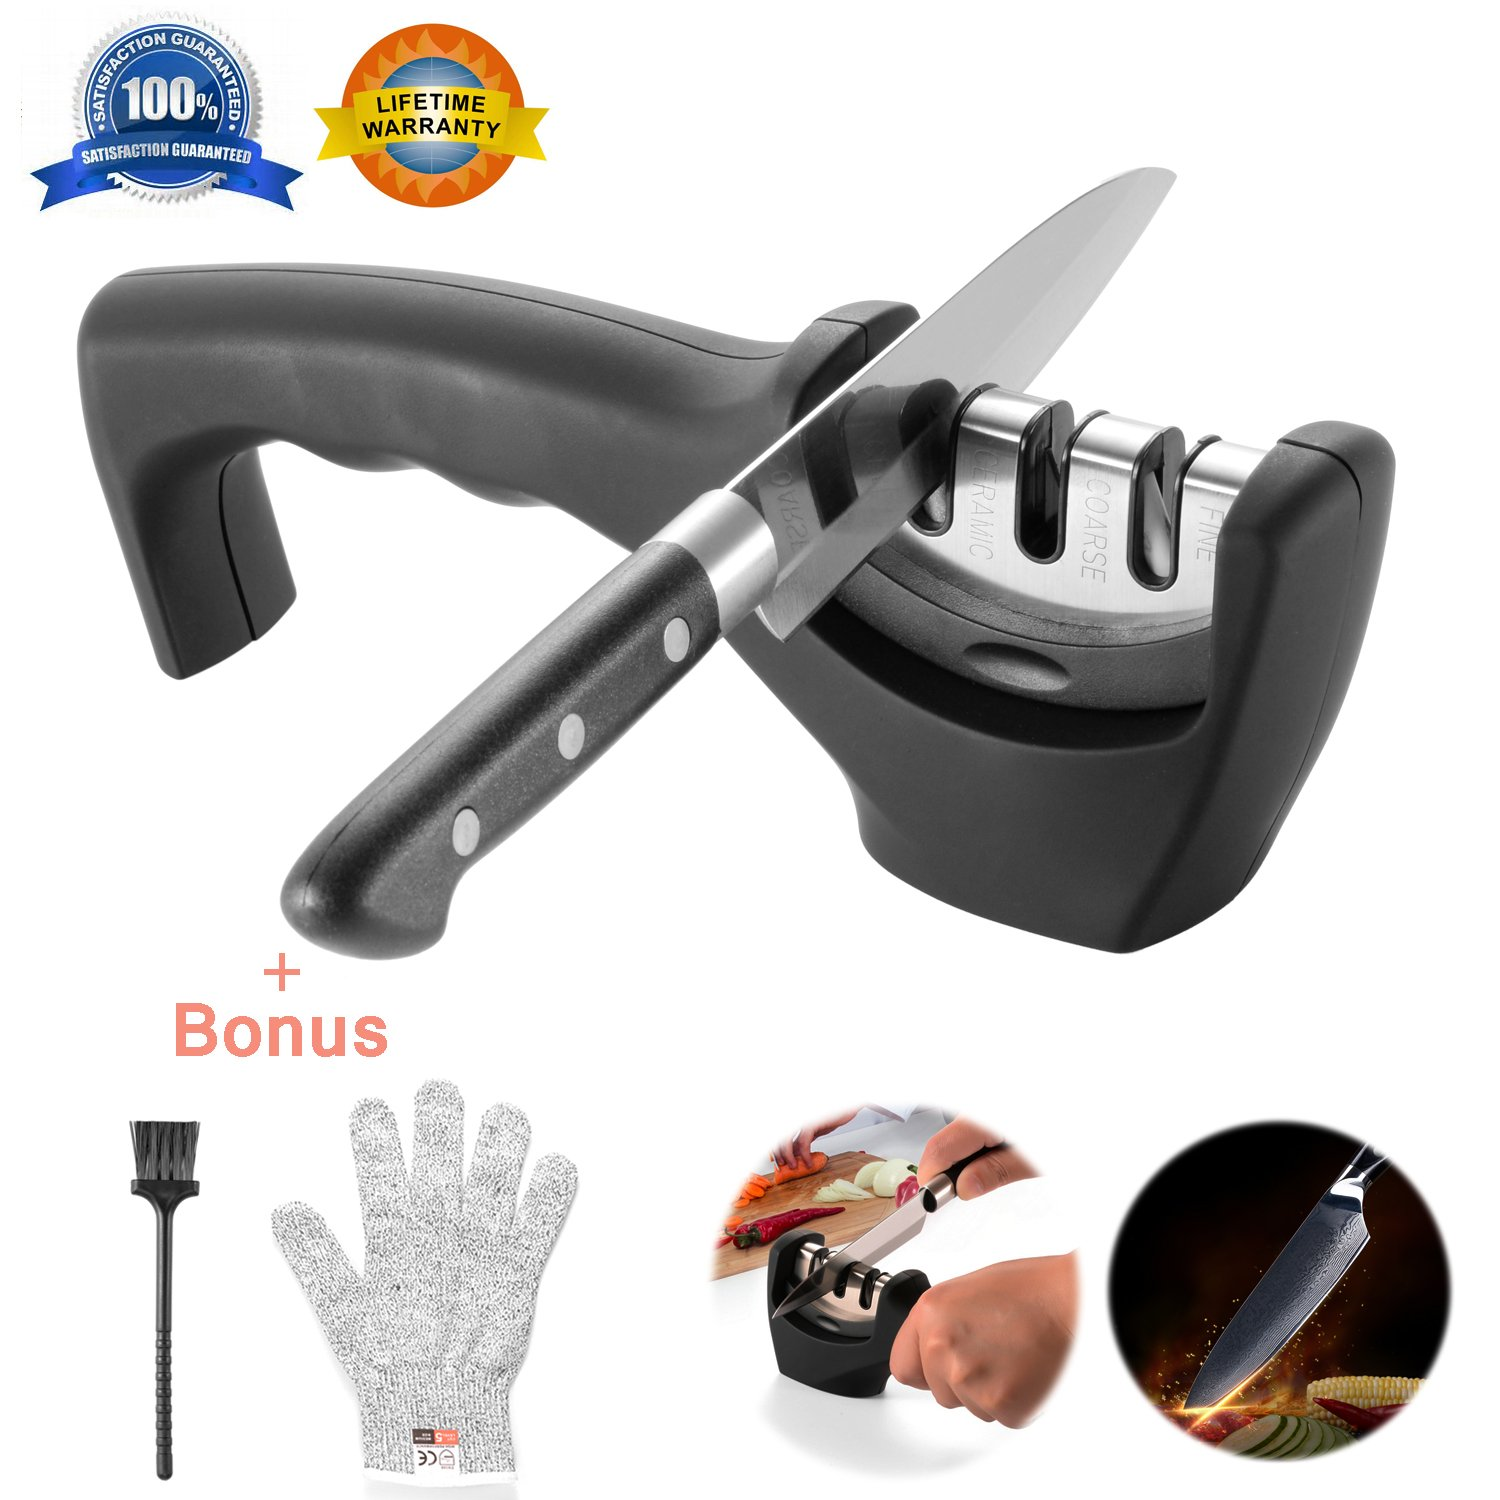 Knife Sharpeners- Knife Sharpening Kit 3 Stage Steel Diamond Ceramic Coated Kitchen Knife Sharpener Tool with Cut Resistant Glove and Brush - Non-Slip ...